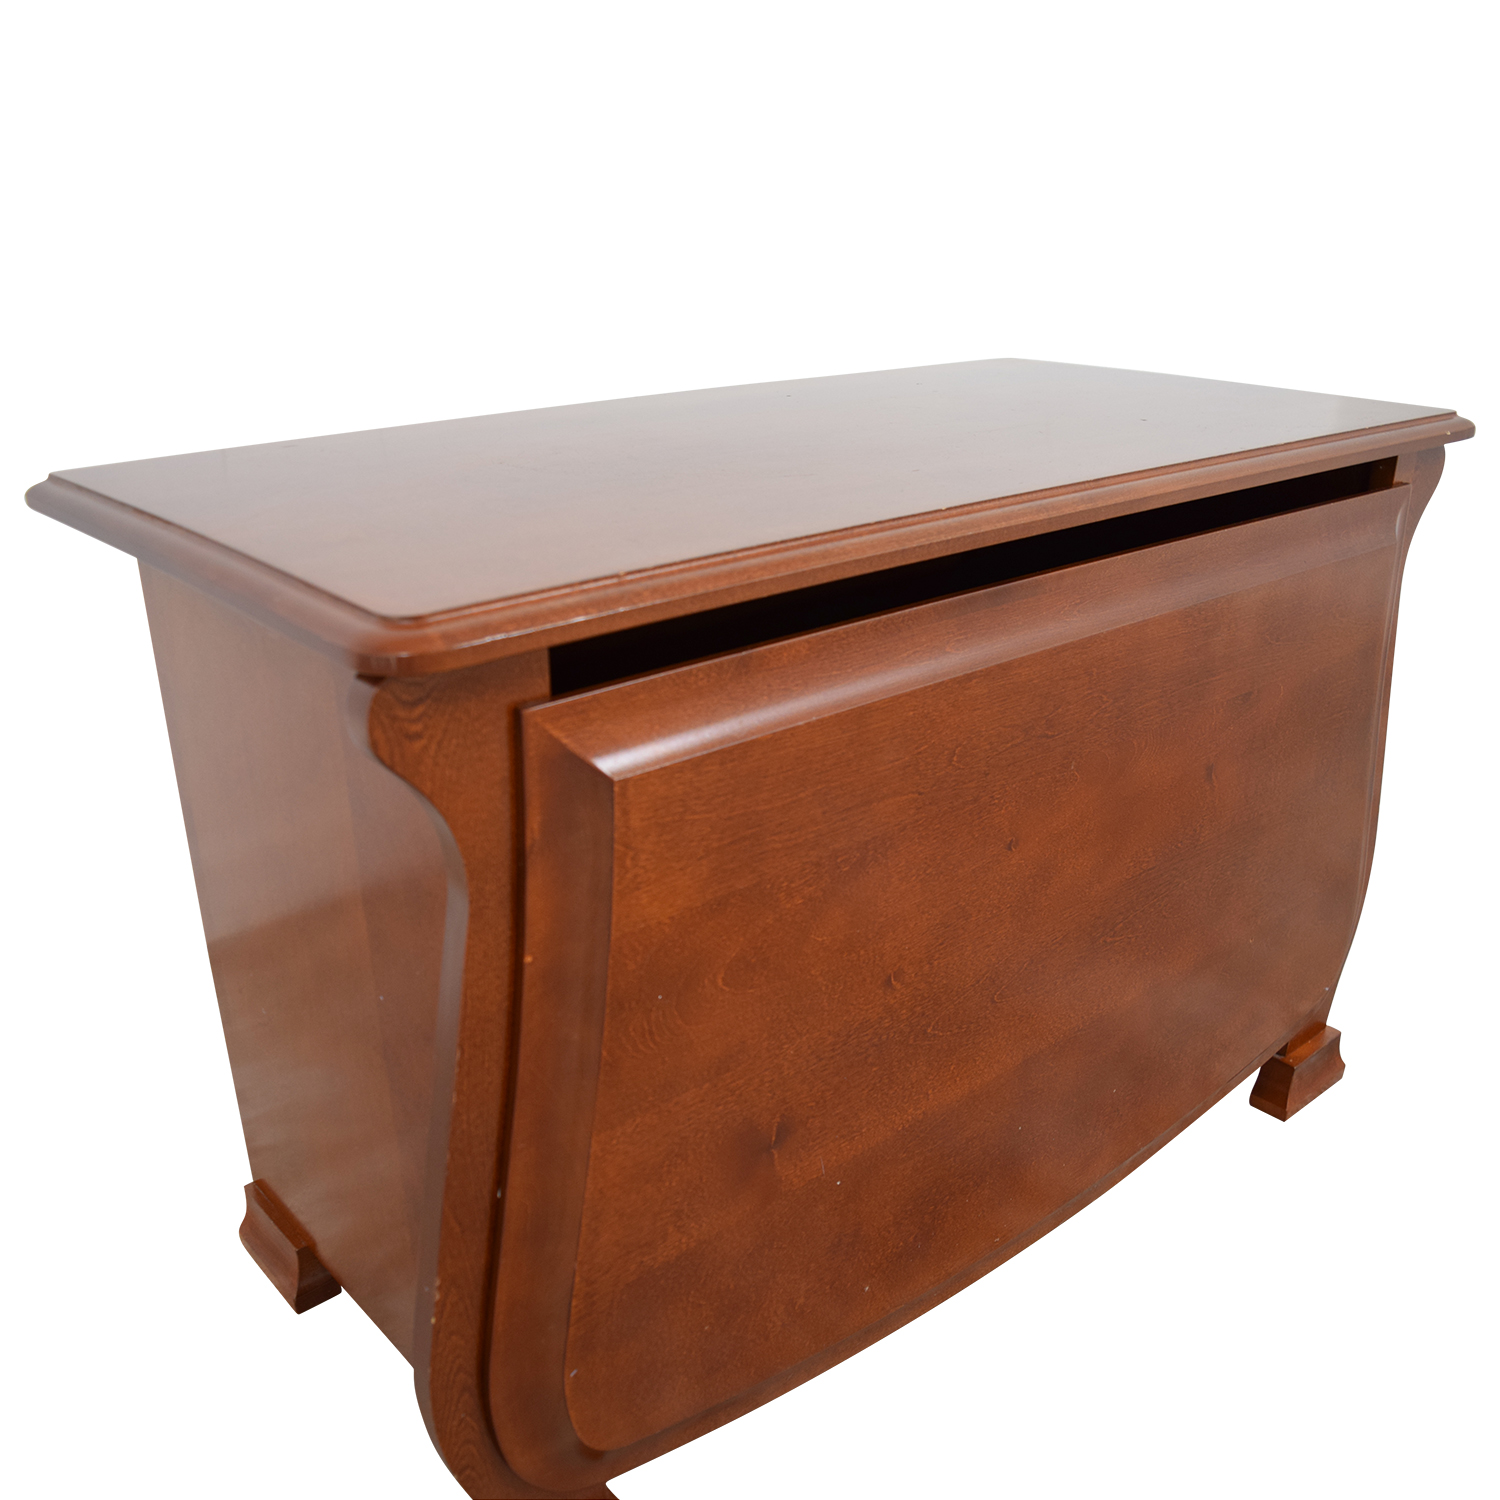 76 Off Pottery Barn Pottery Barn Wood Toy Chest Storage